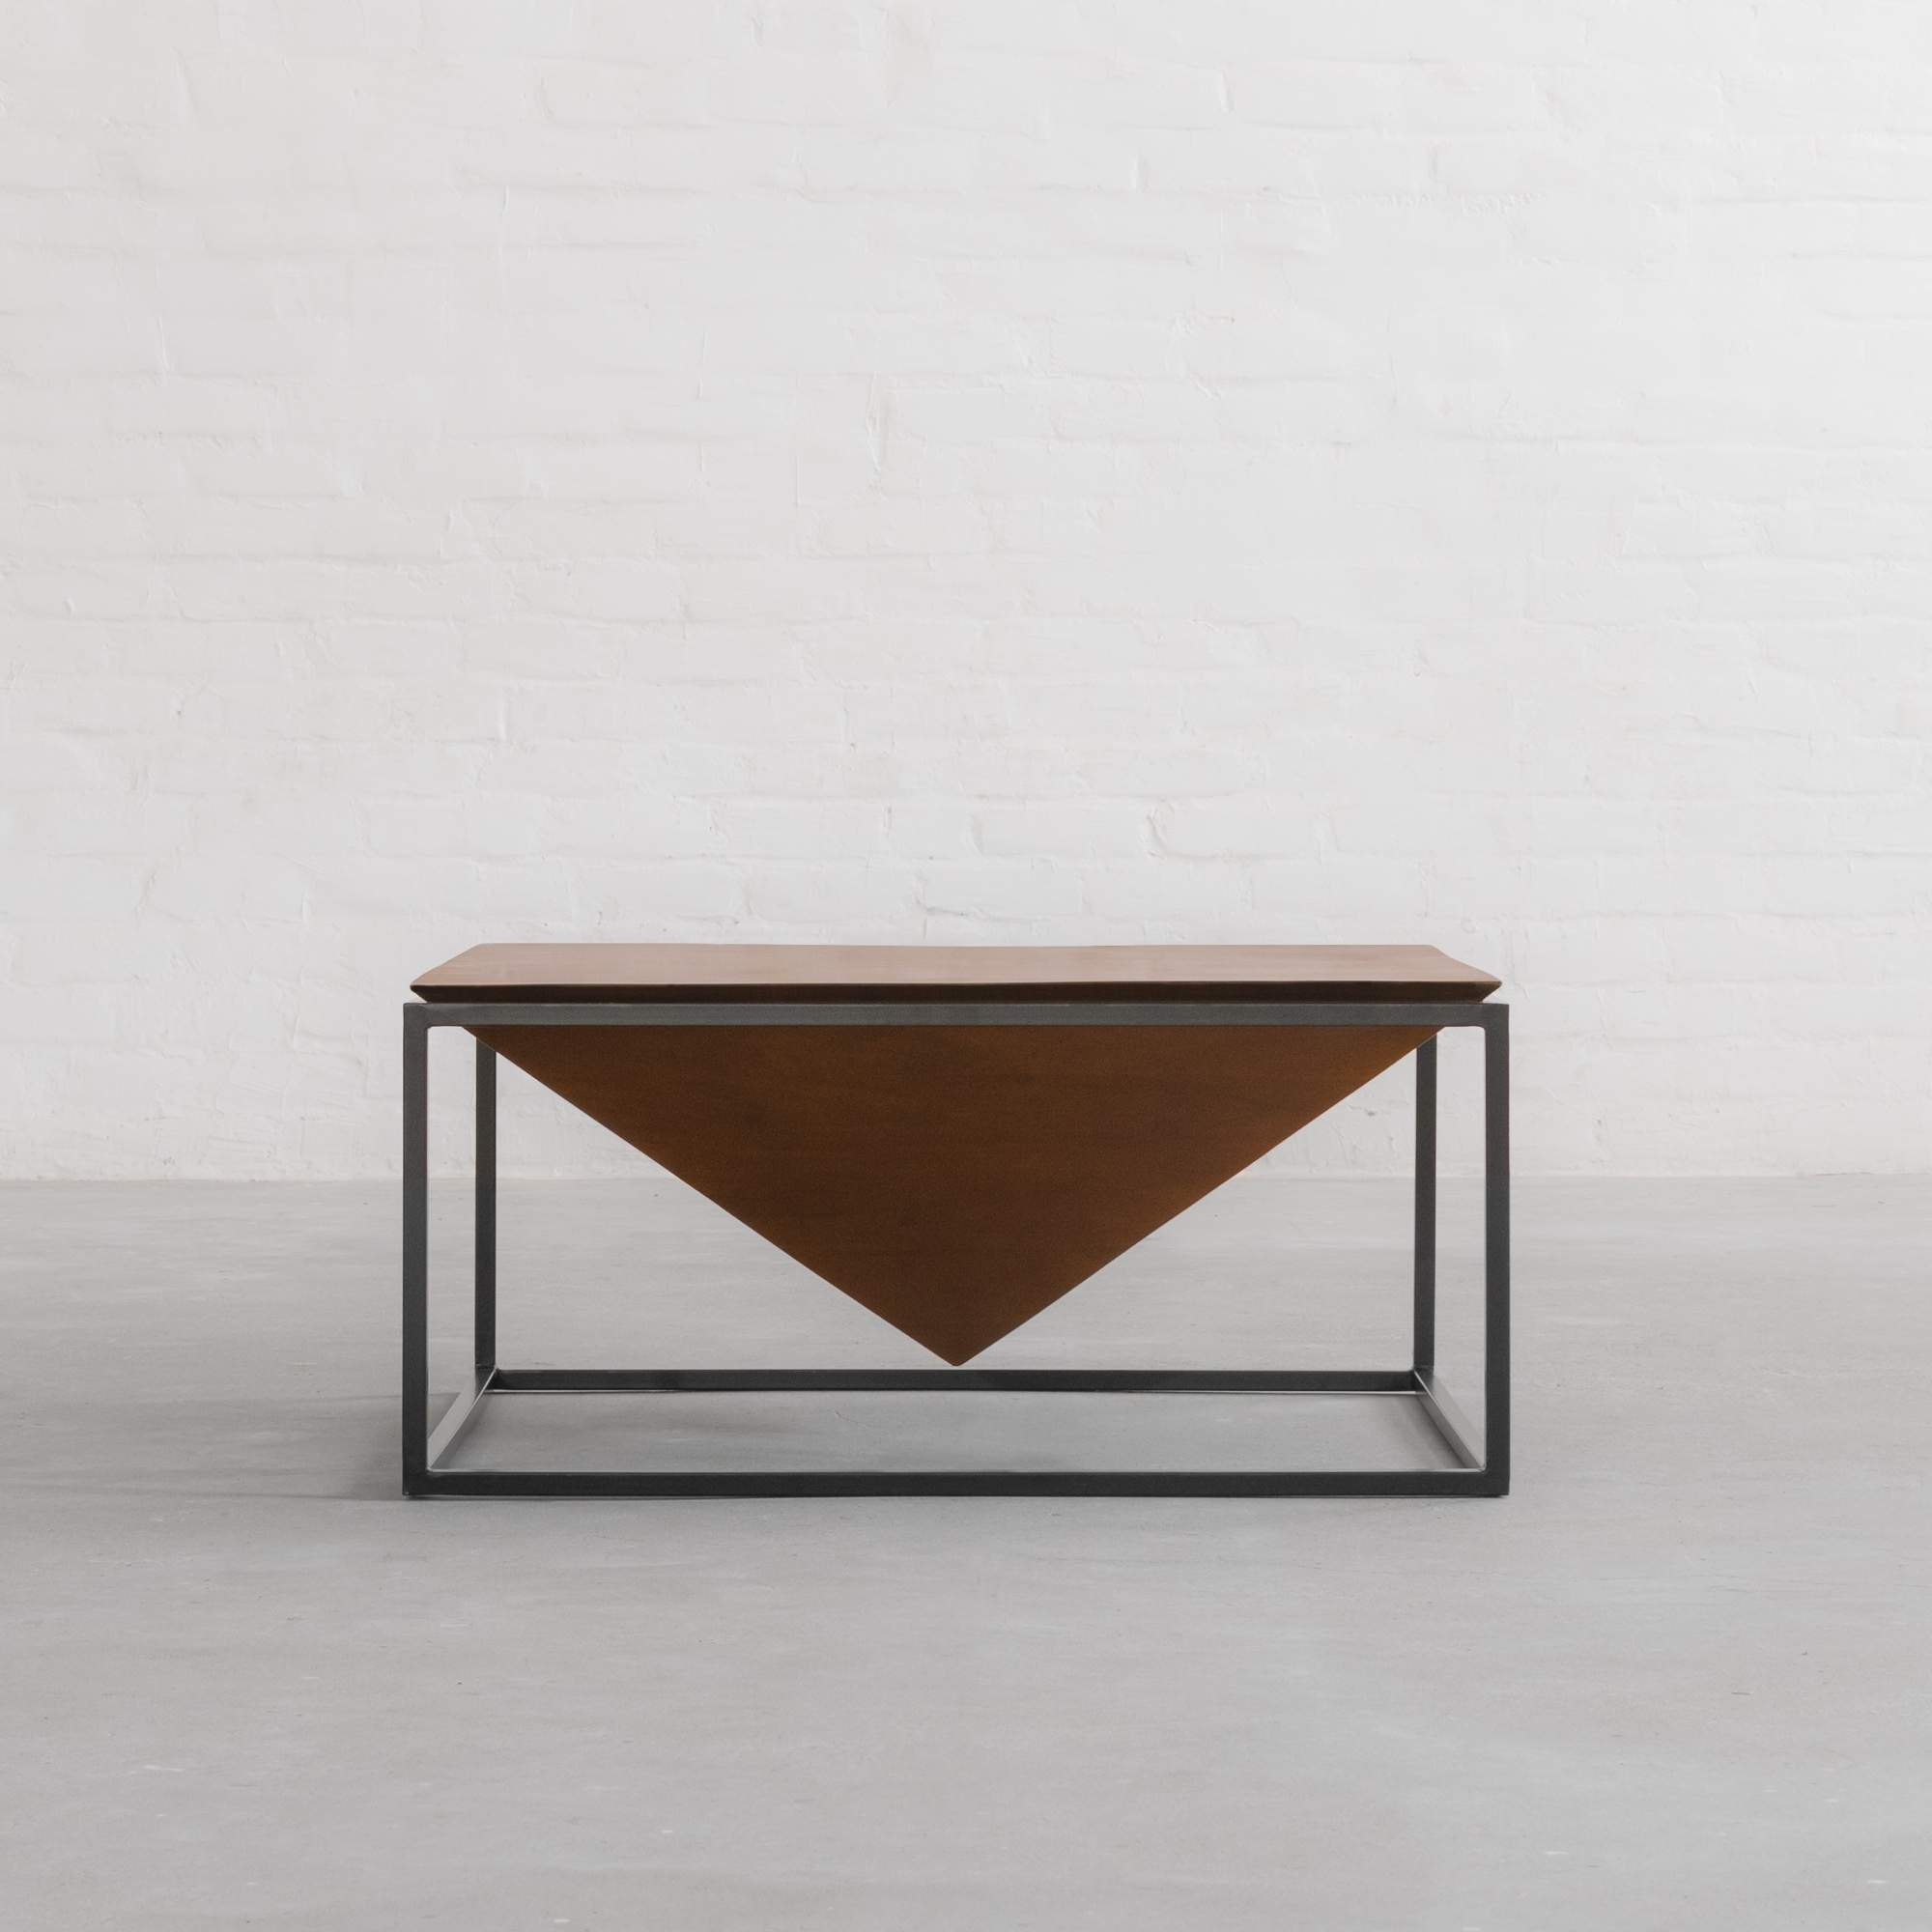 Fashionable Inverted Triangle Coffee Tables Intended For Louvre Coffee Table (View 4 of 20)